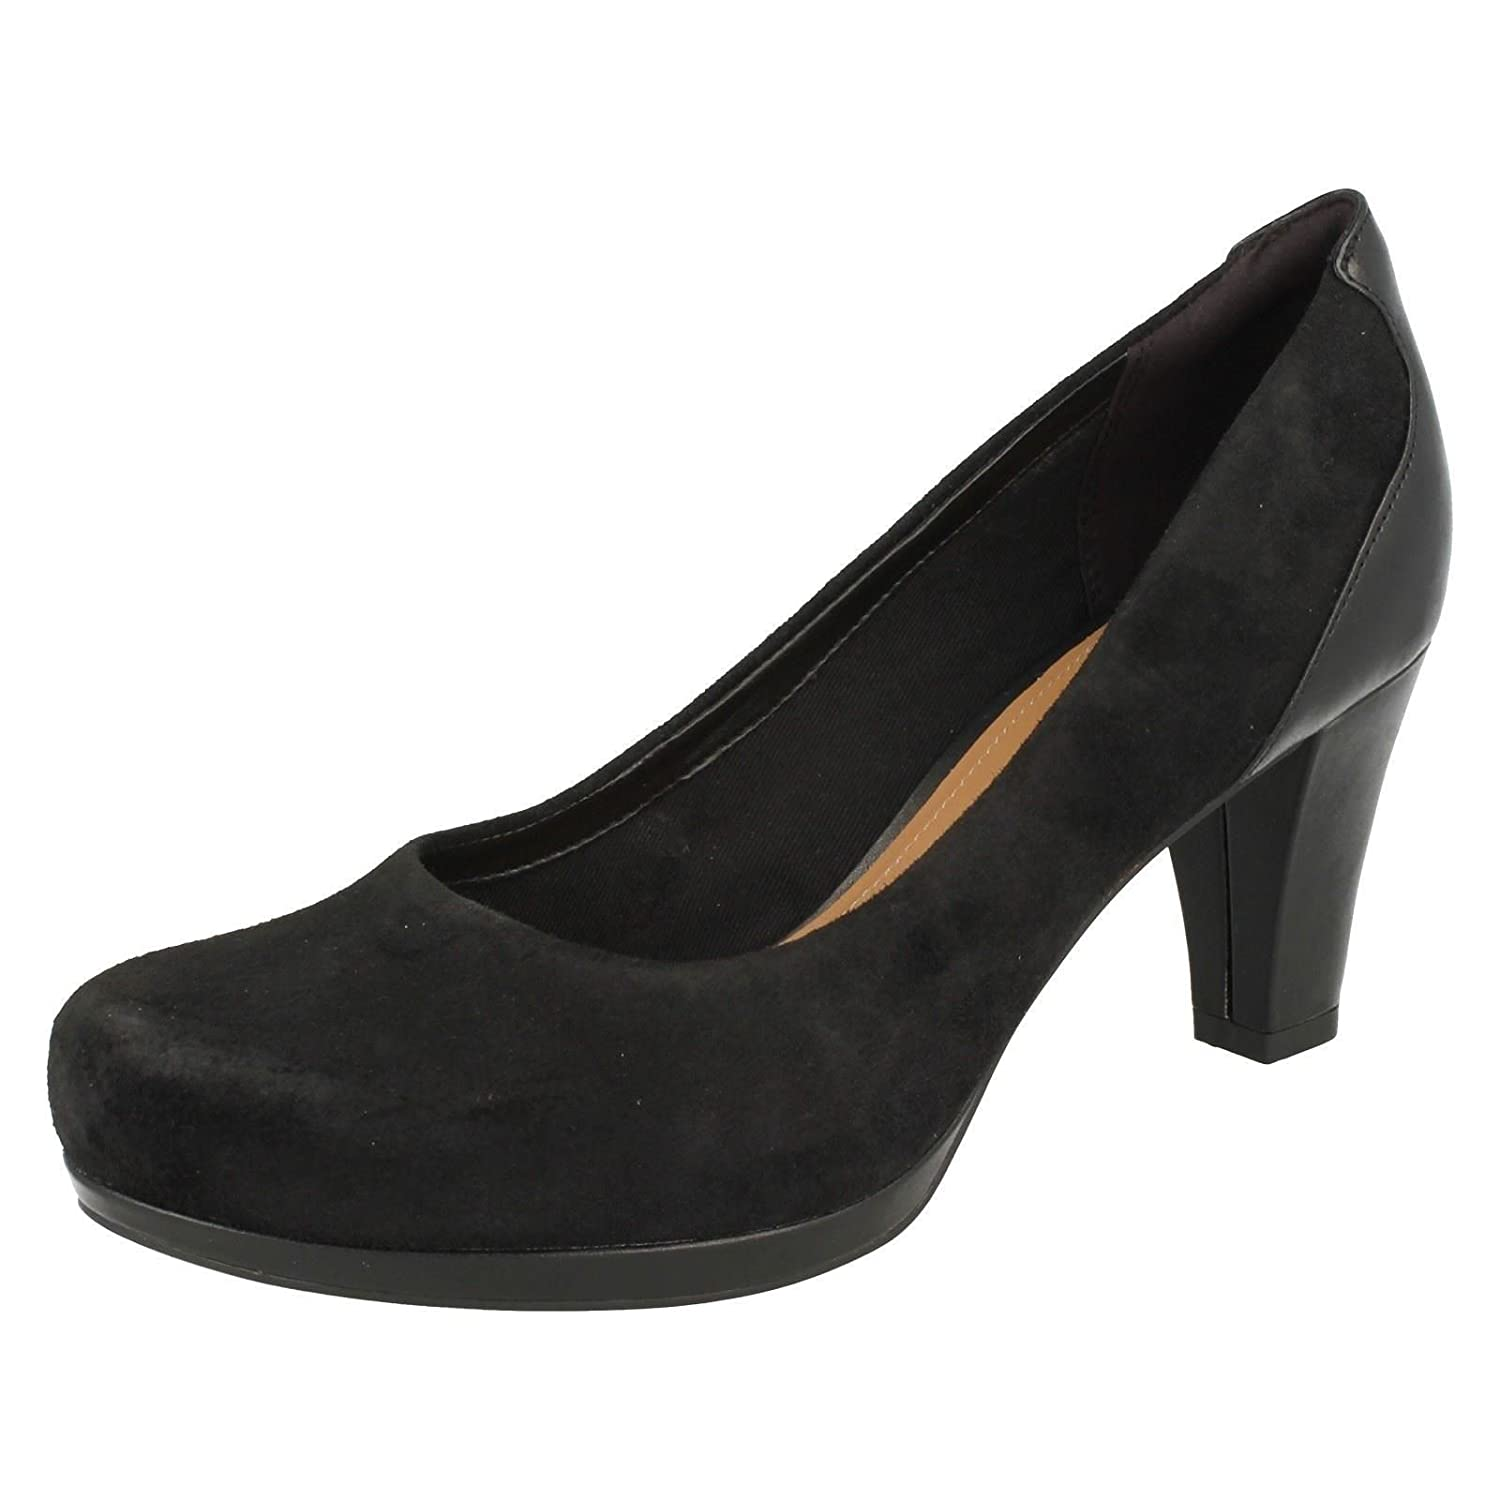 Clarks Pumps Damen Chorus Chic Pumps Clarks Schwarz a86be0